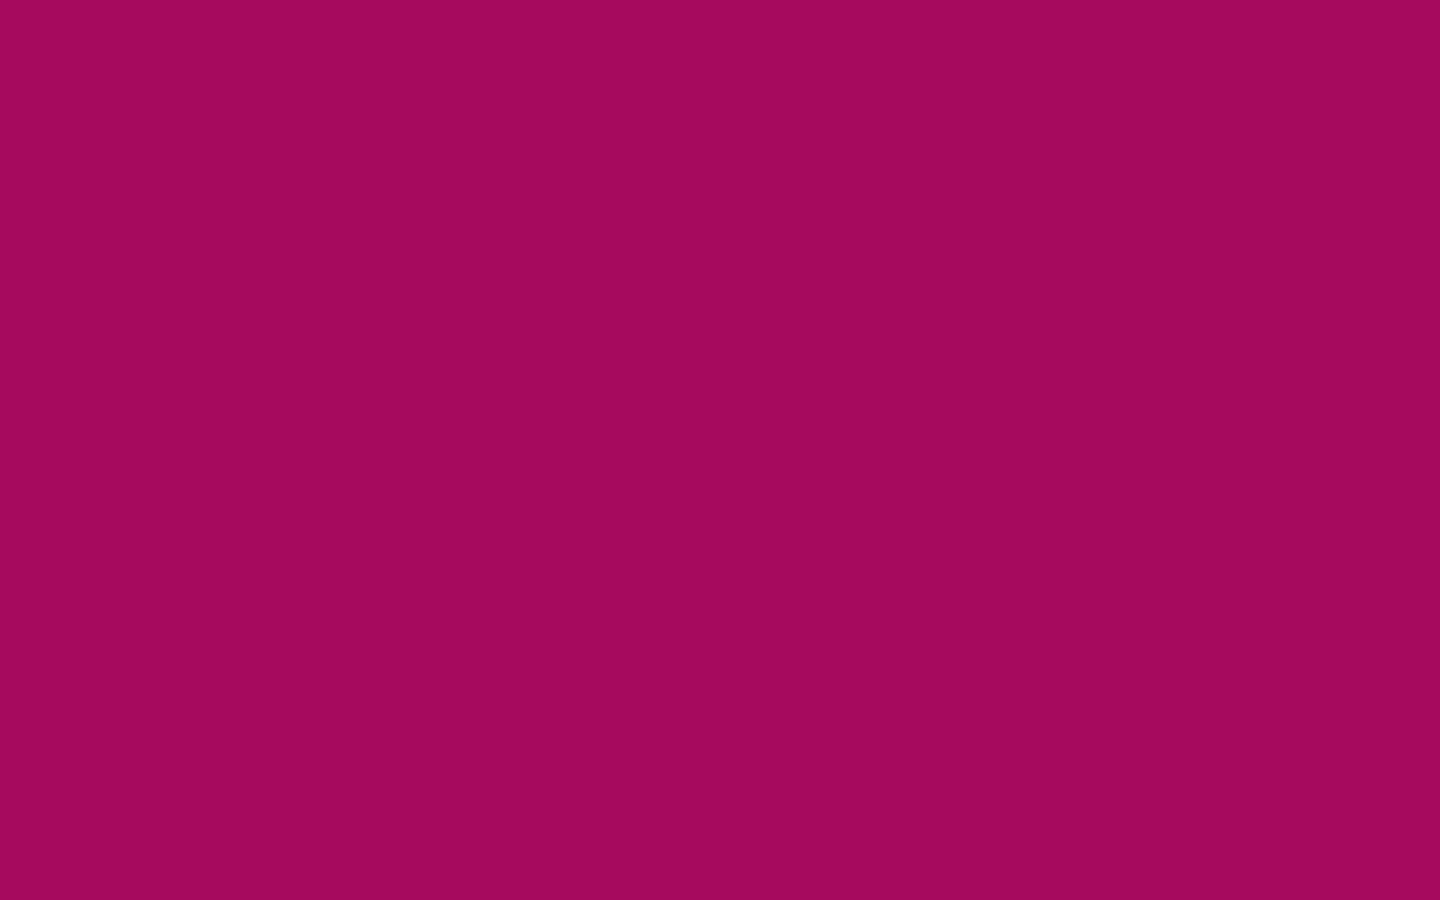 1440x900 Jazzberry Jam Solid Color Background